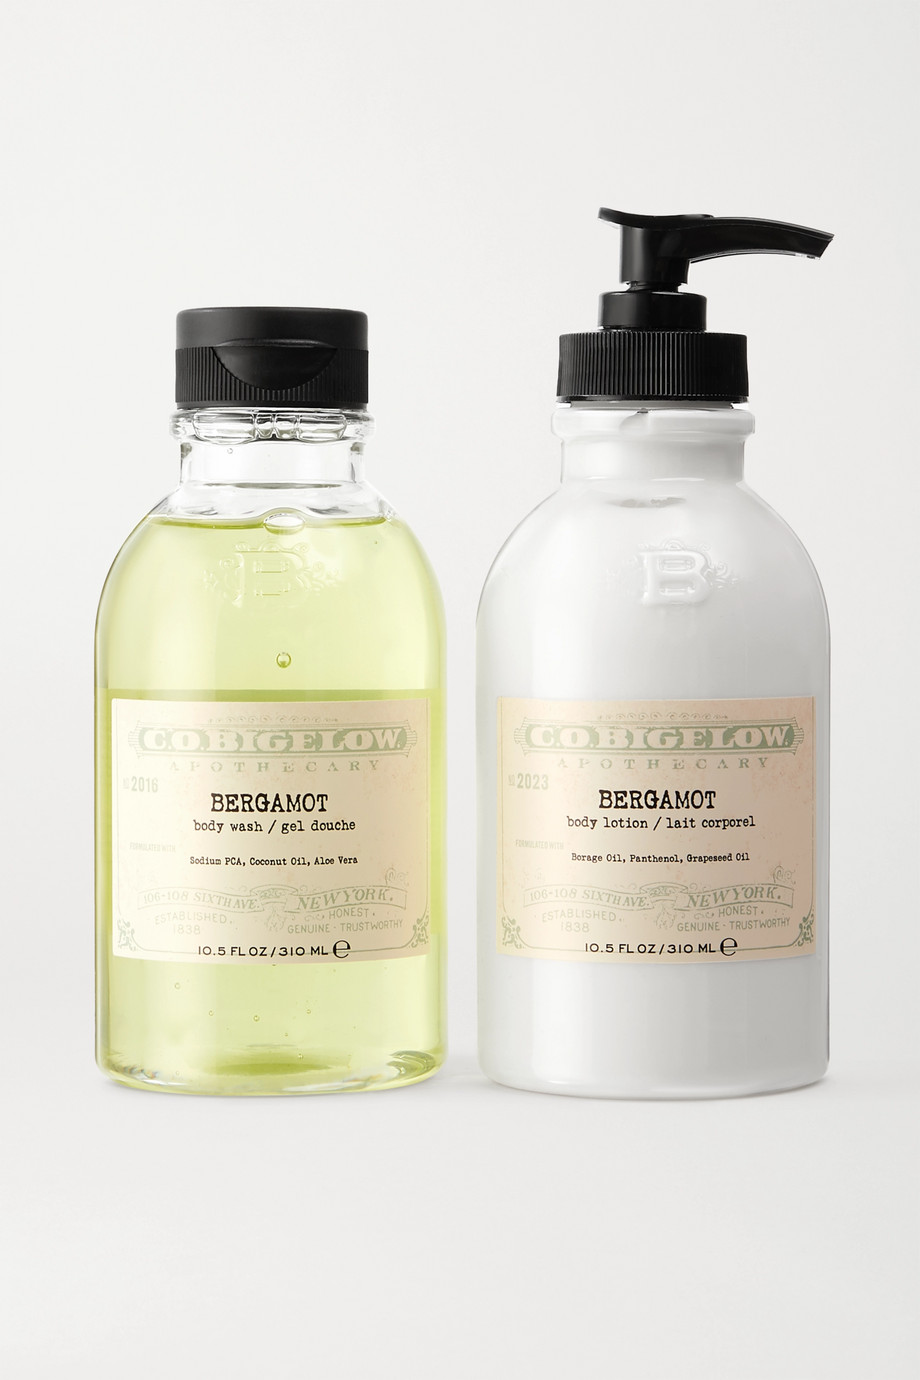 C.O. BIGELOW Iconic Collection Body Wash and Lotion Set - Bergamot